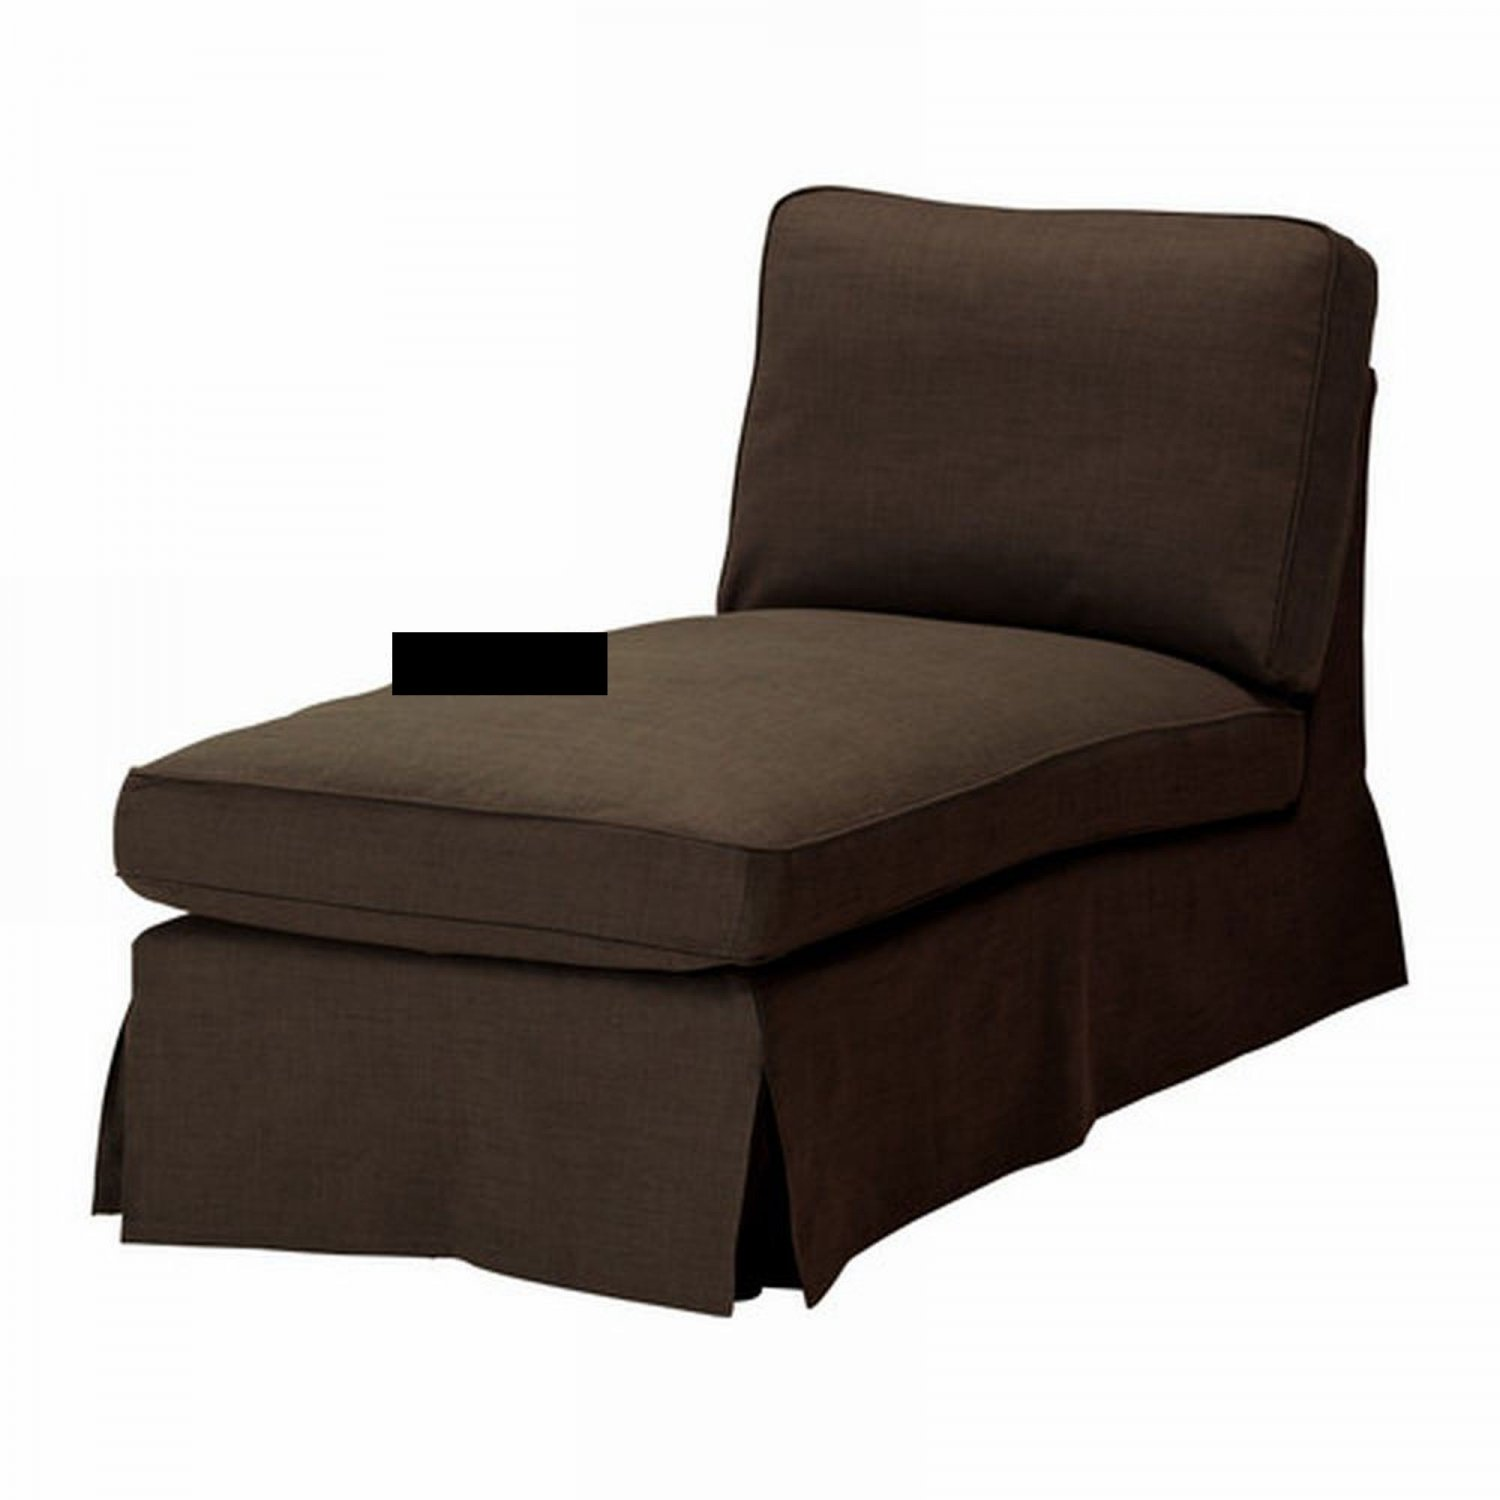 Ikea ektorp chaise longue cover slipcover svanby brown for Chaise lounge covers cotton